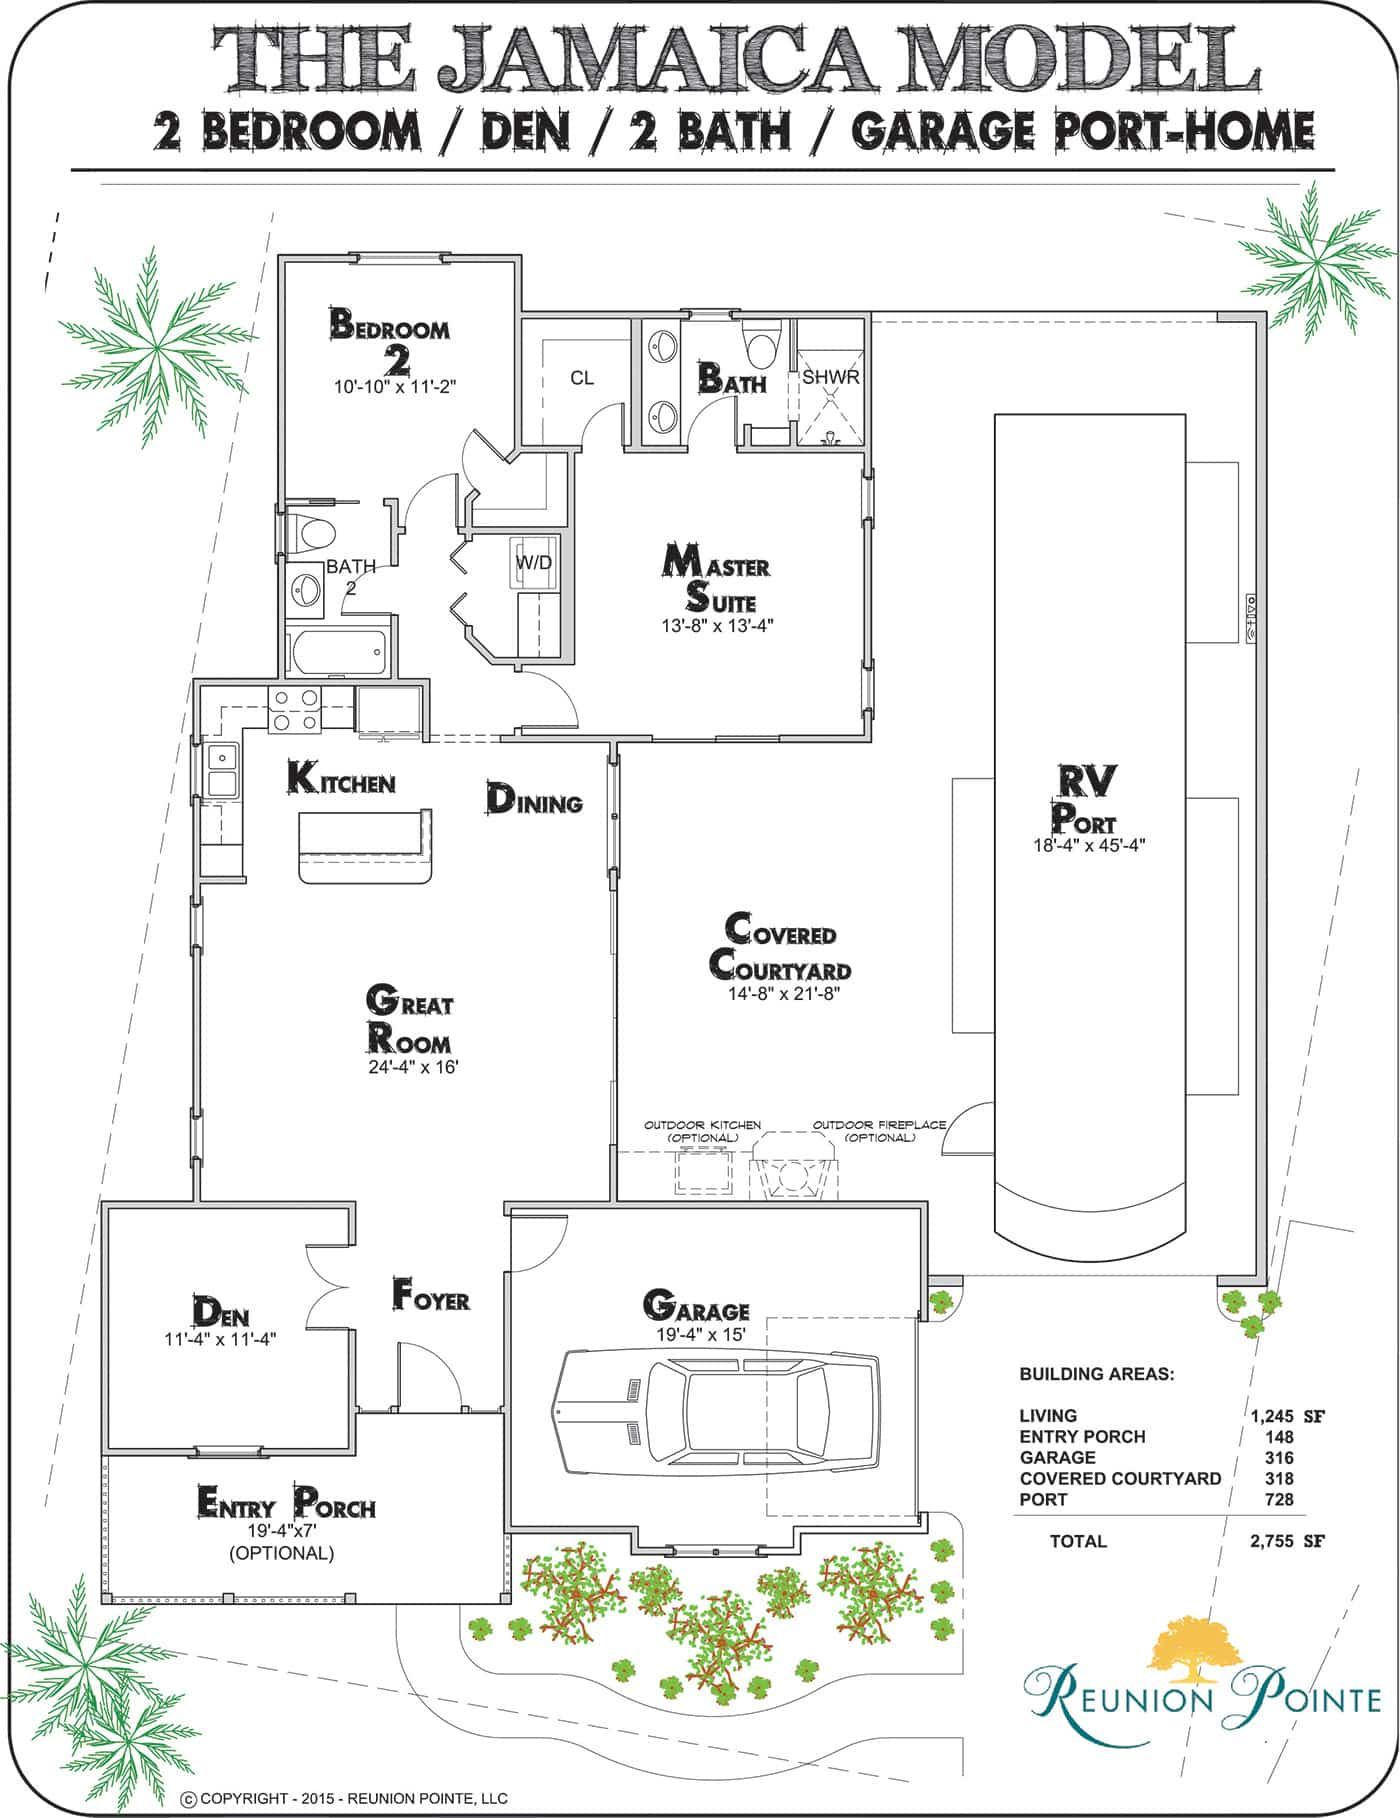 Jamaica Rv Port Home Model Reunion Pointe In 2020 Barndominium Floor Plans Barndominium Plans Floor Plans